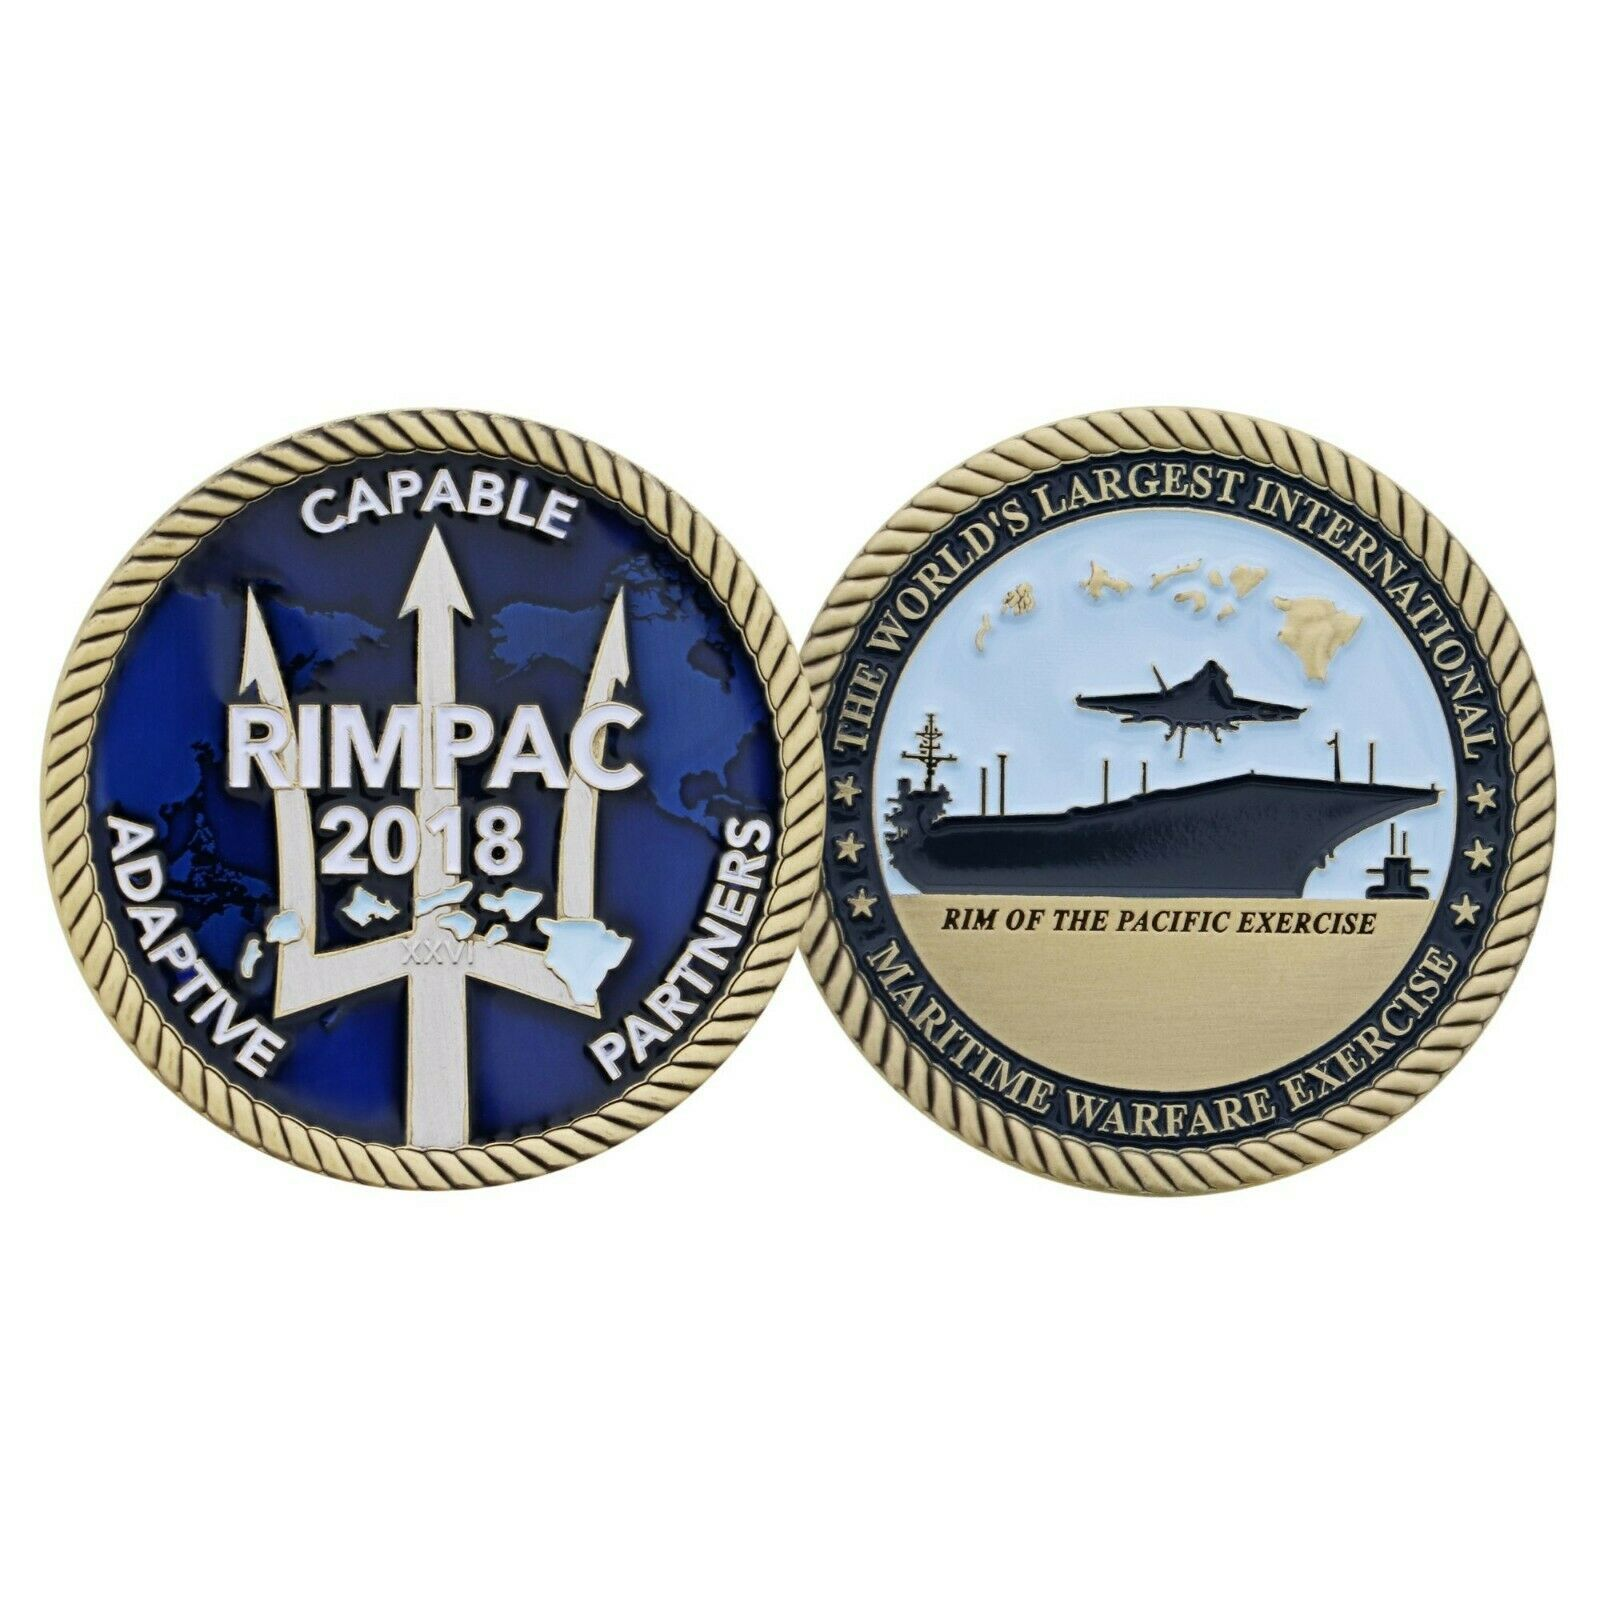 "2019 RIMPAC CAPABLE ADAPTIVE PARTNERS 1.75""  CHALLENGE COIN"